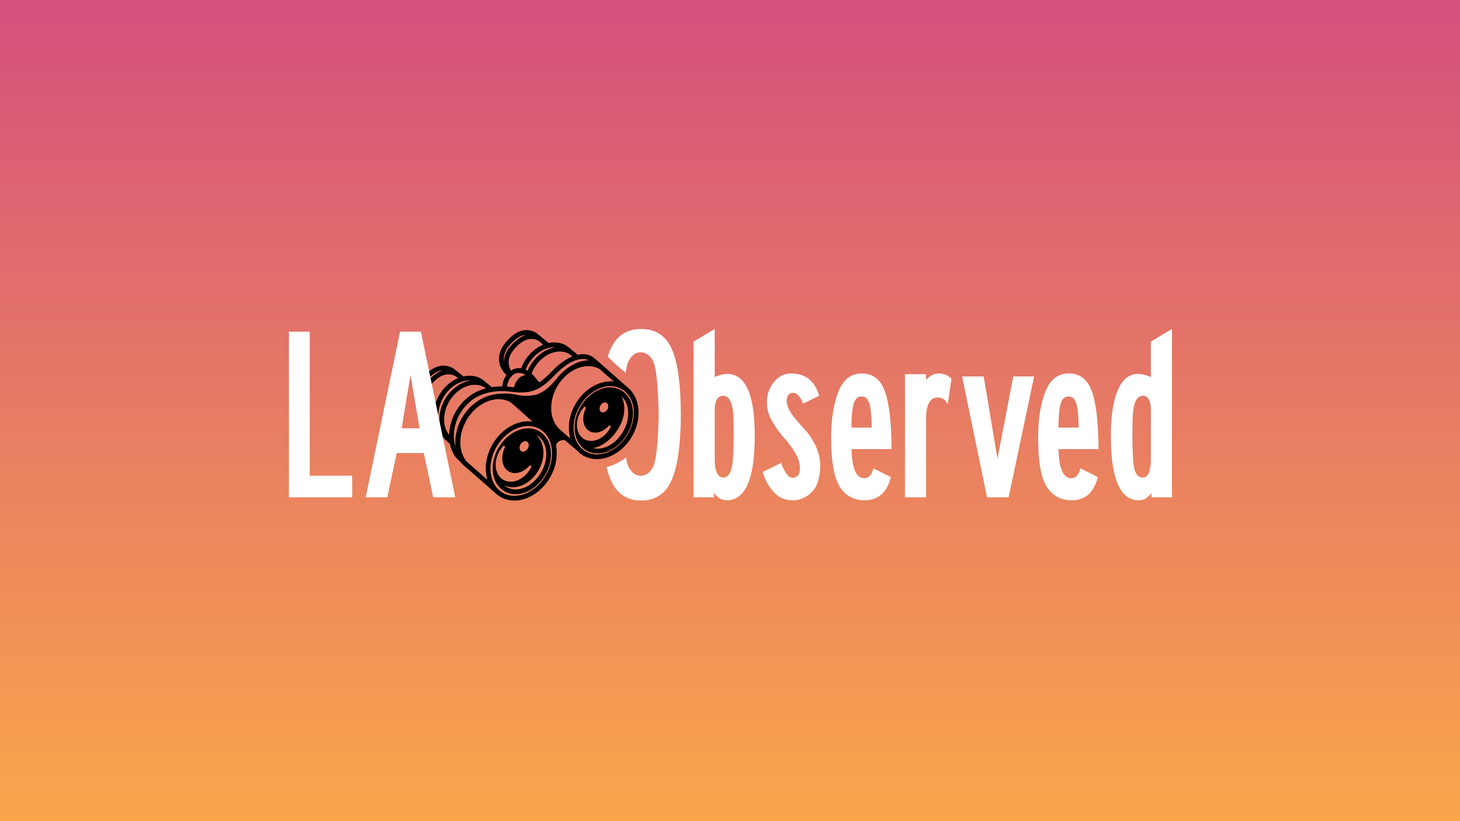 Most of you within the sound of my voice don't live in the city of Los Angeles. That means you may be confused by references in the media to a mysterious controversy called Measure B...